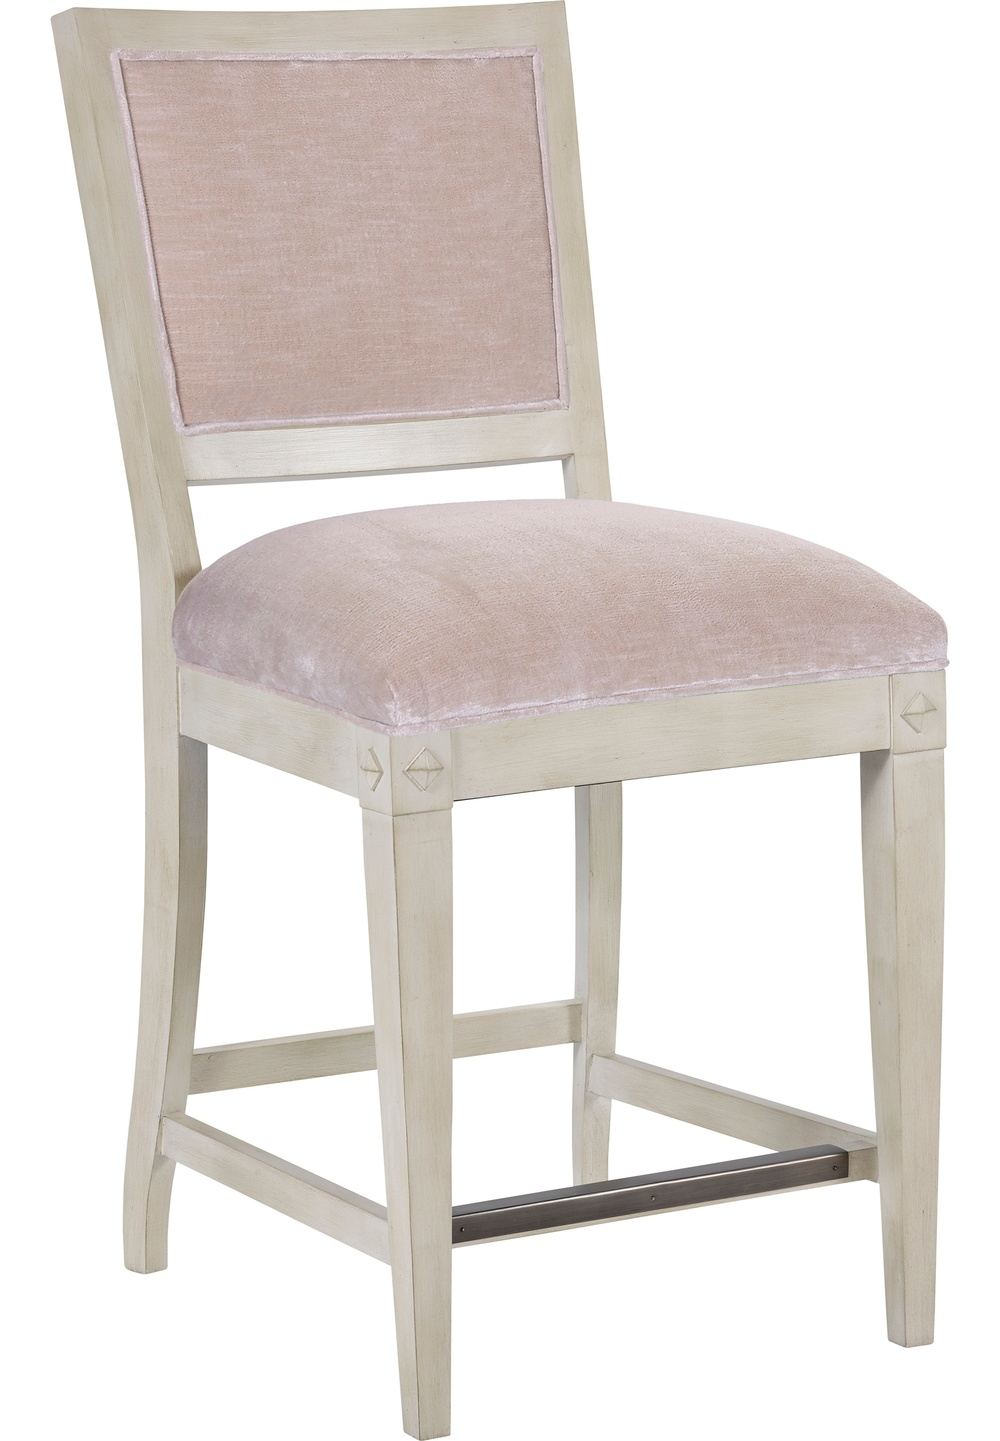 Hickory Chair - Trouvais Counter Stool